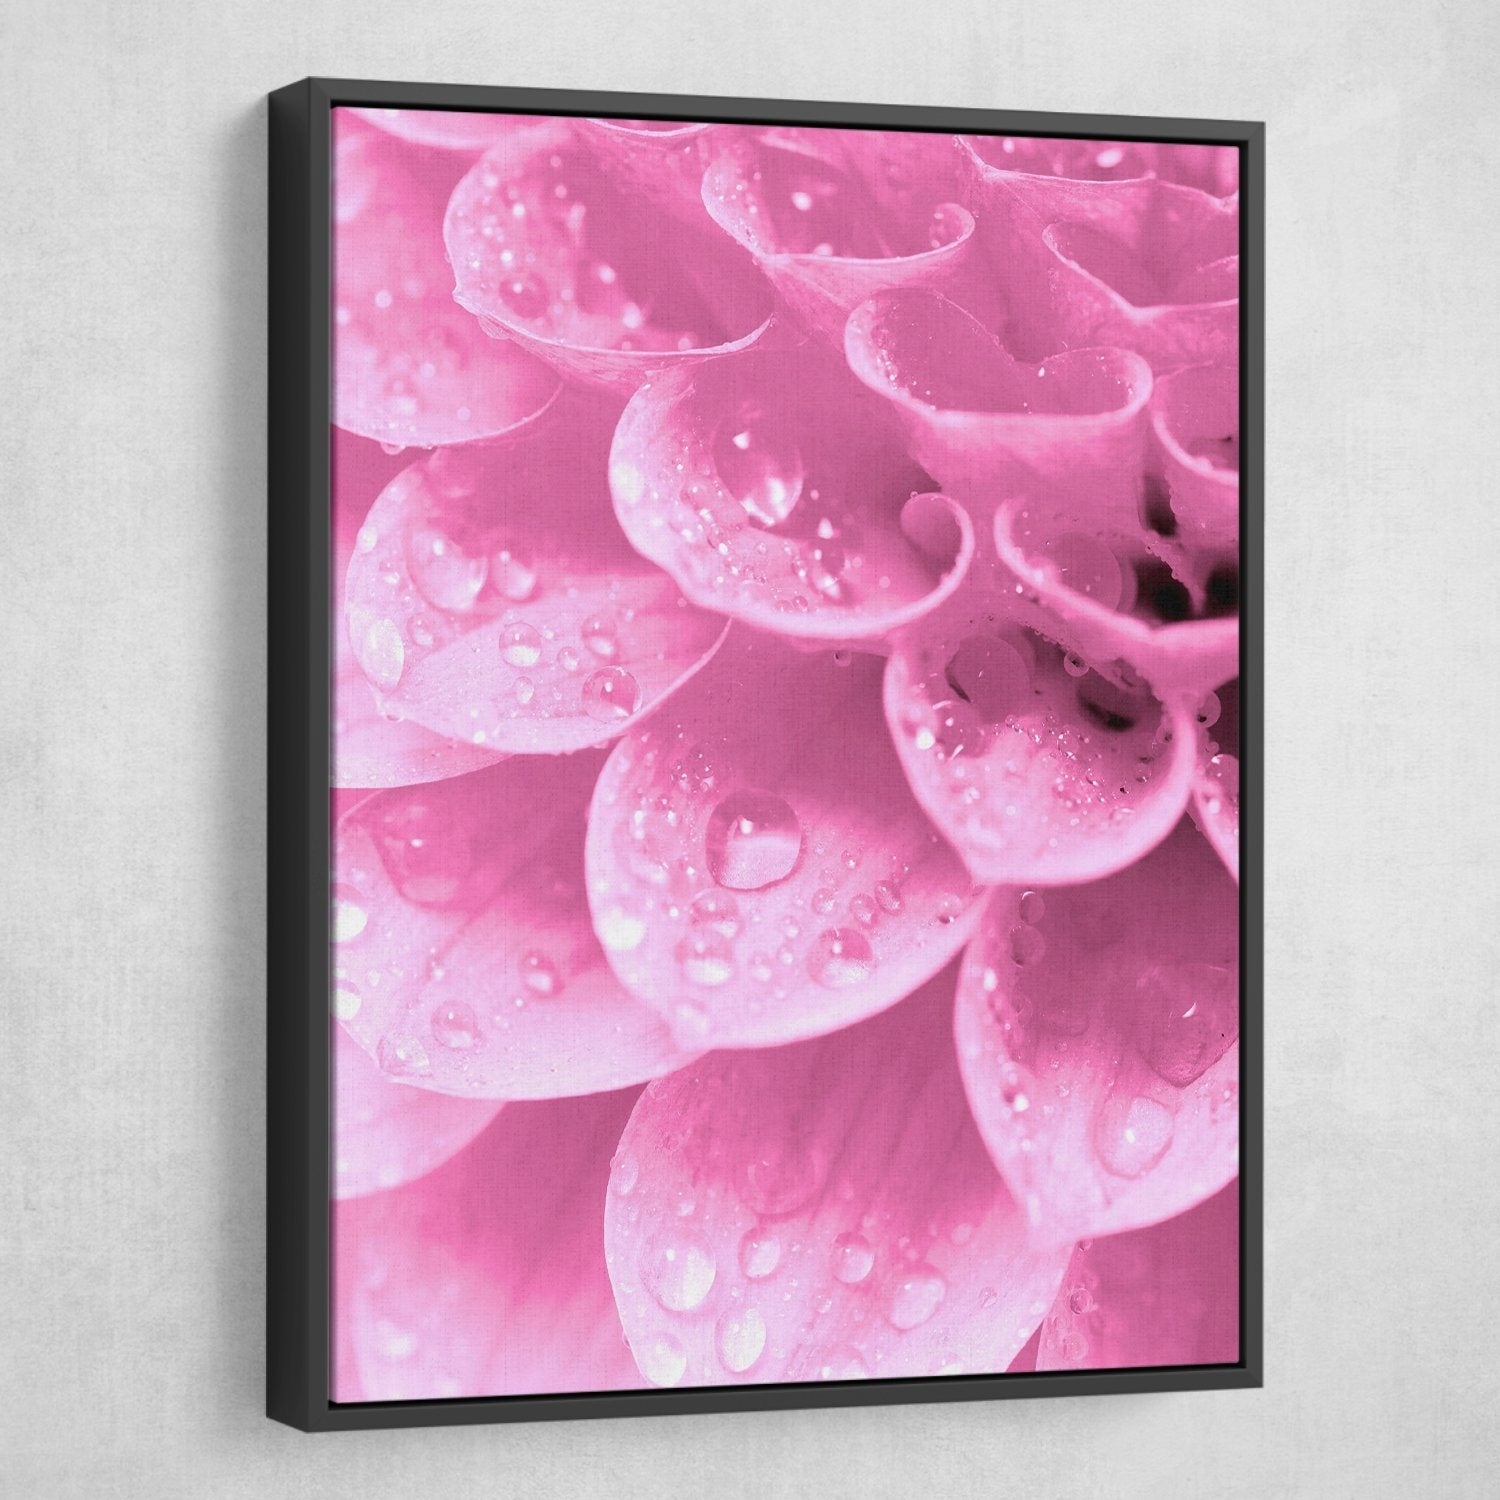 Water Drops on flowers wall art